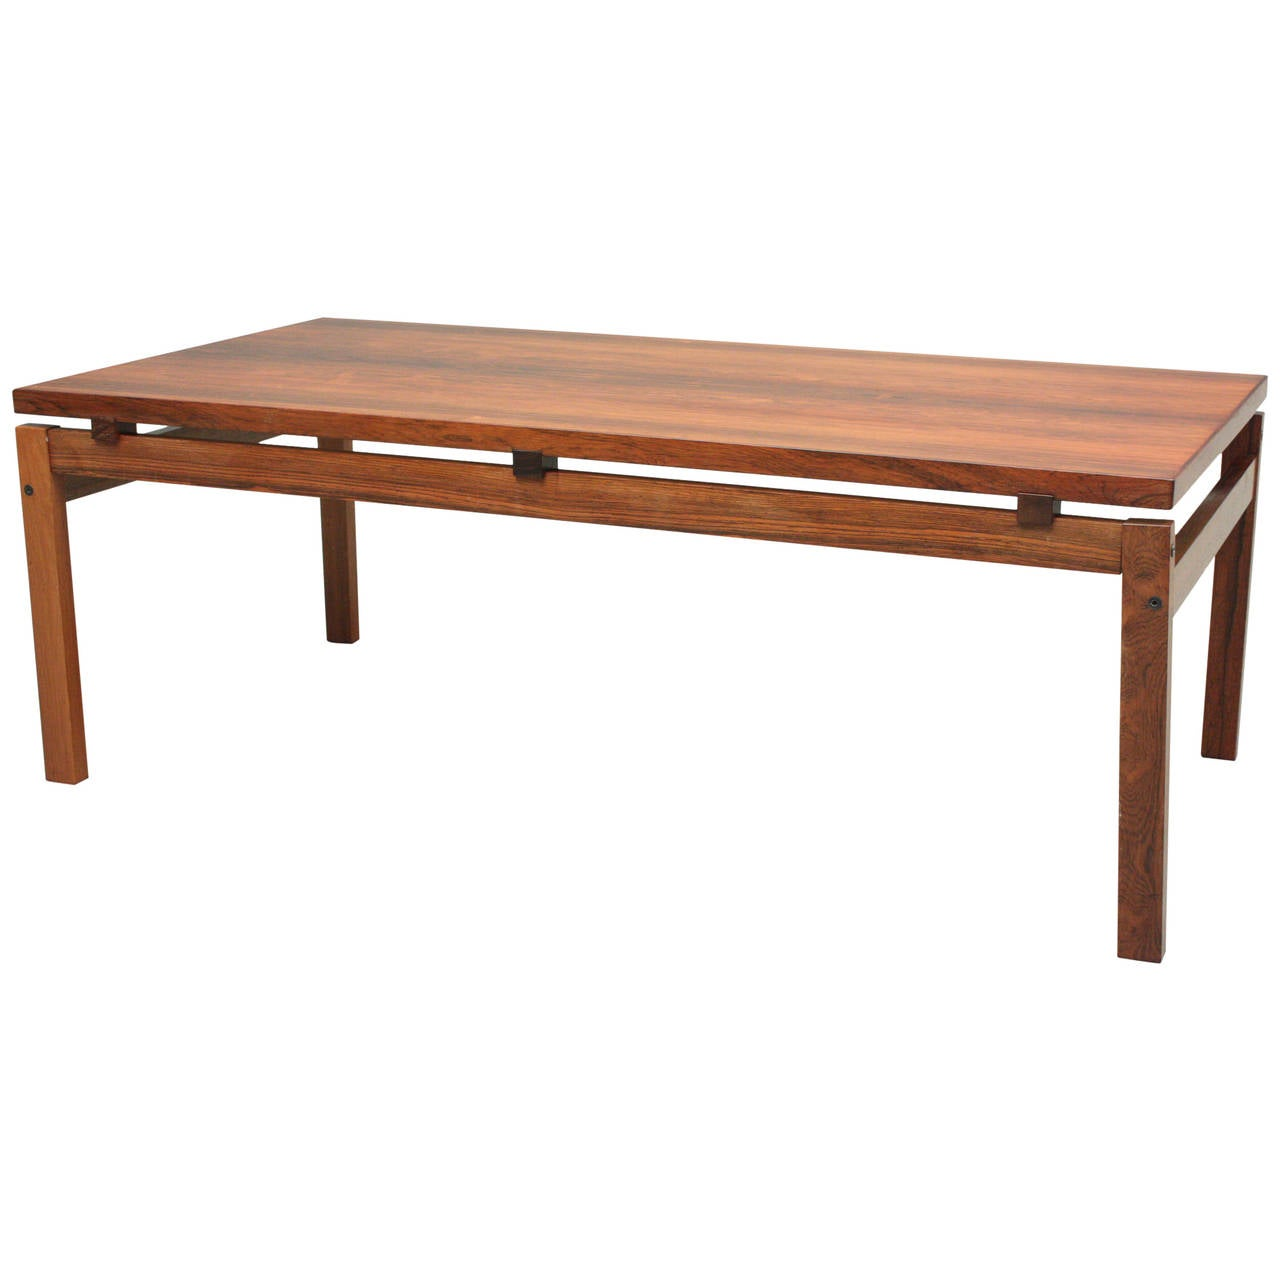 Mid century modern rosewood coffee table at 1stdibs Home furniture coffee tables